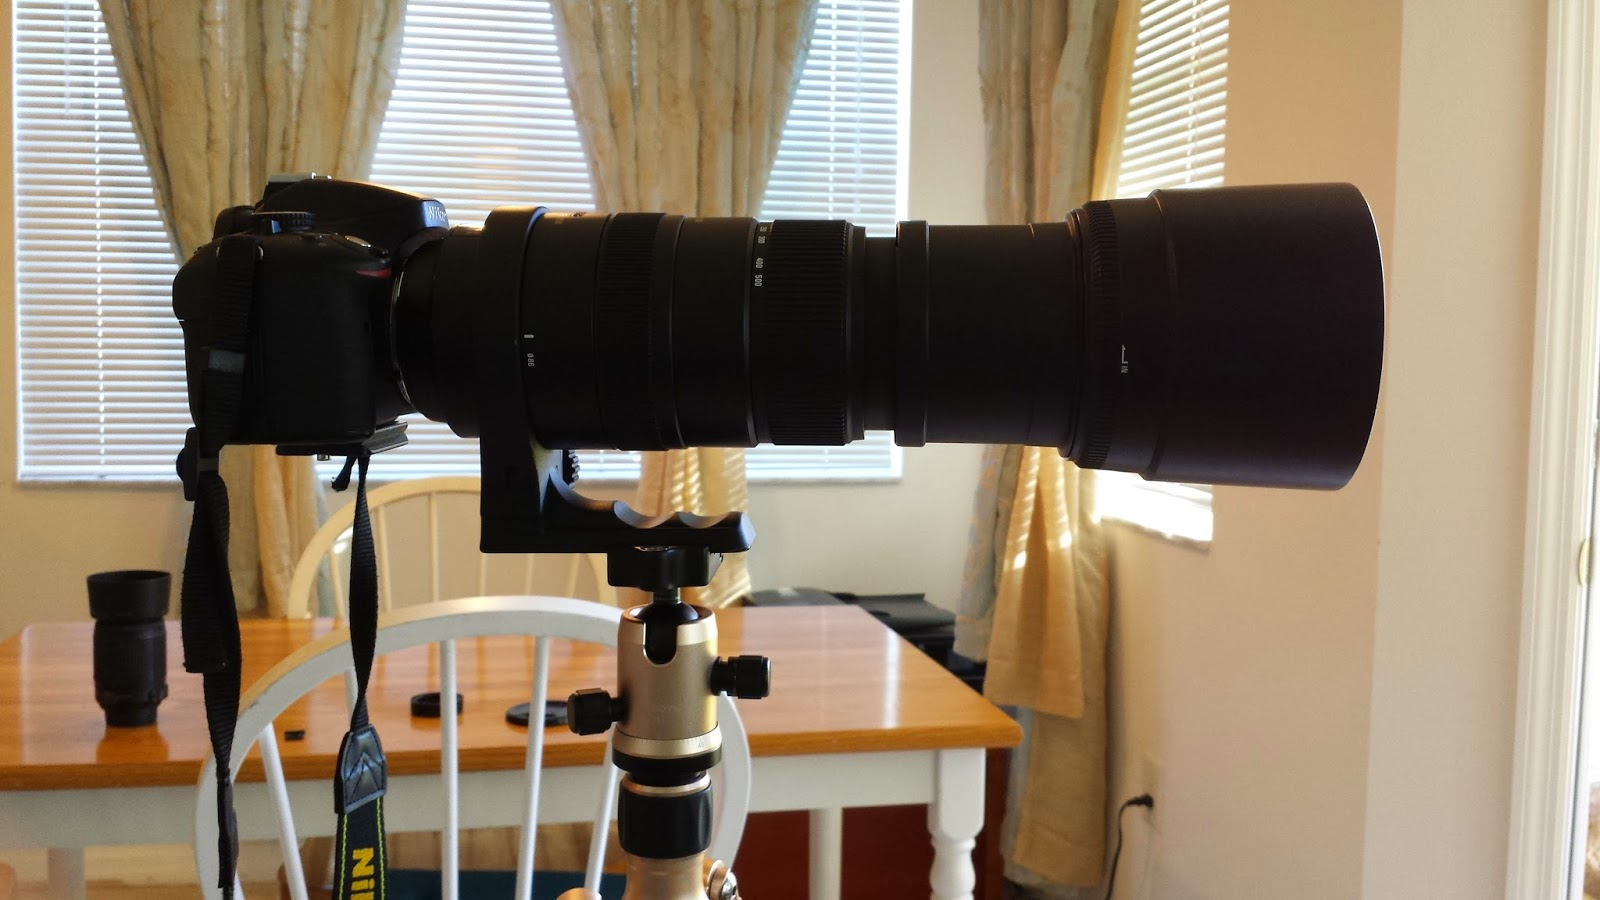 image of nikon camera with sigma 150-500mm lens attached